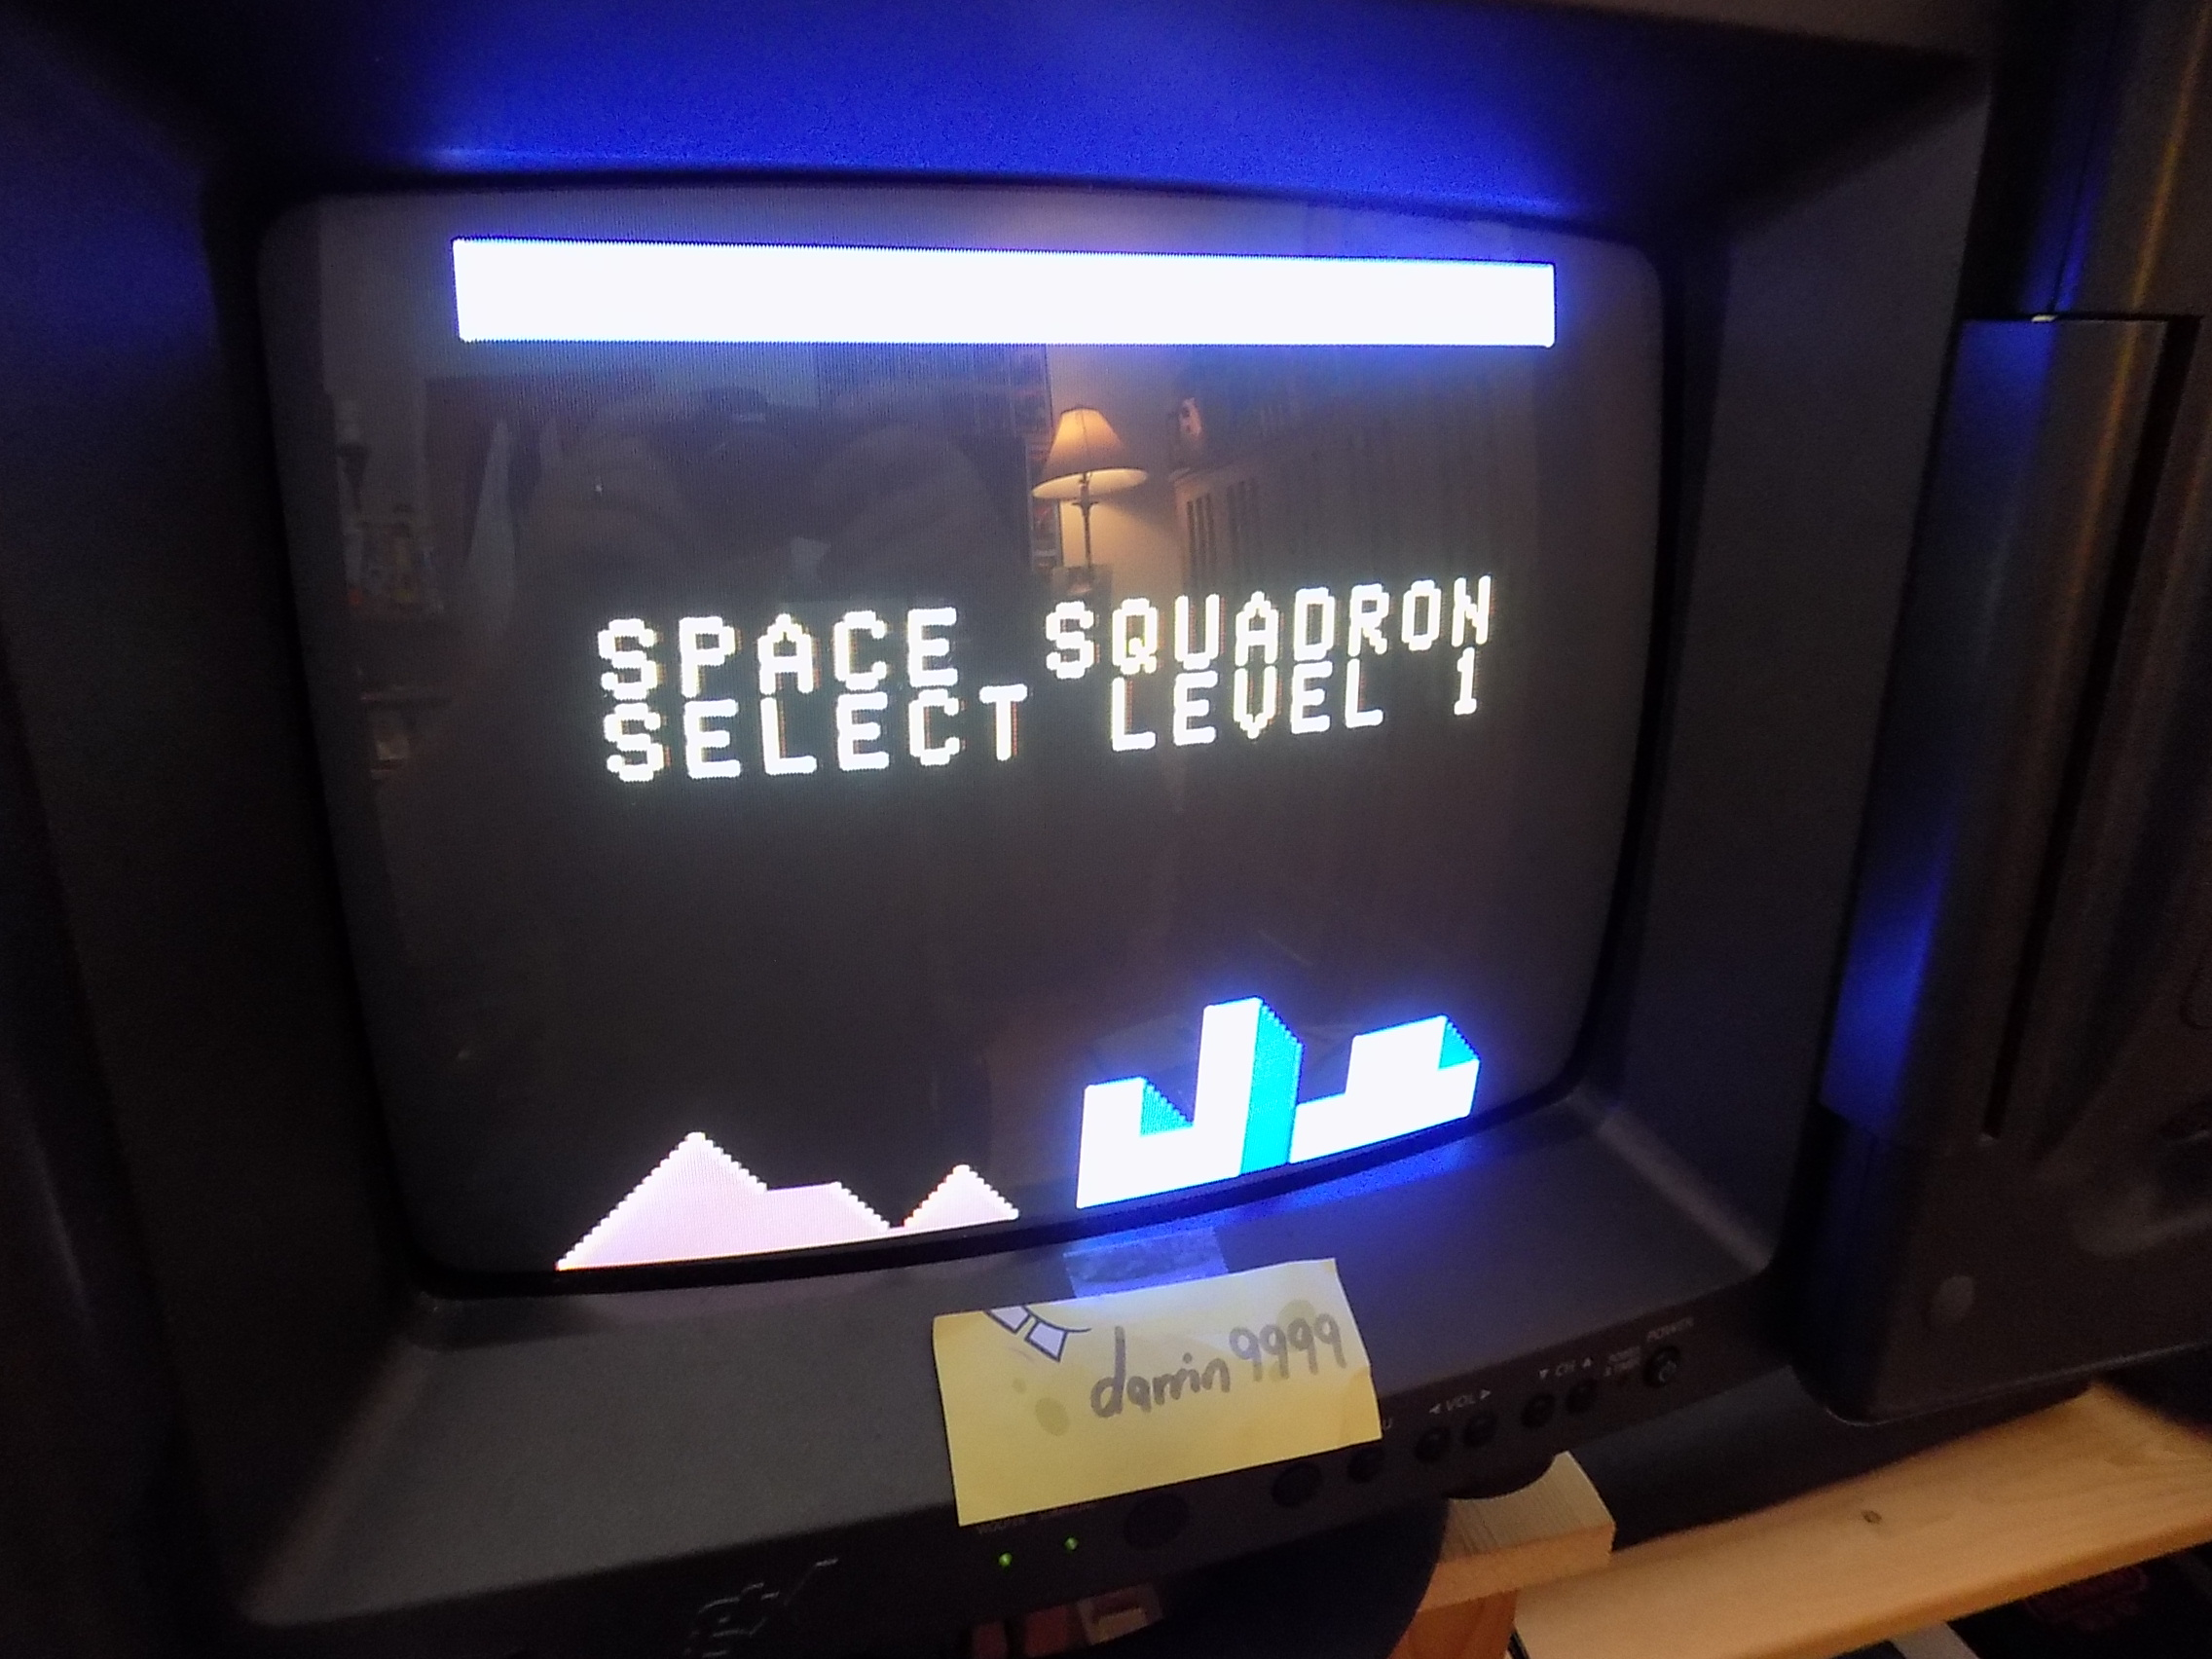 darrin9999: Space Squadron (Arcadia 2001) 310 points on 2017-12-17 10:55:06